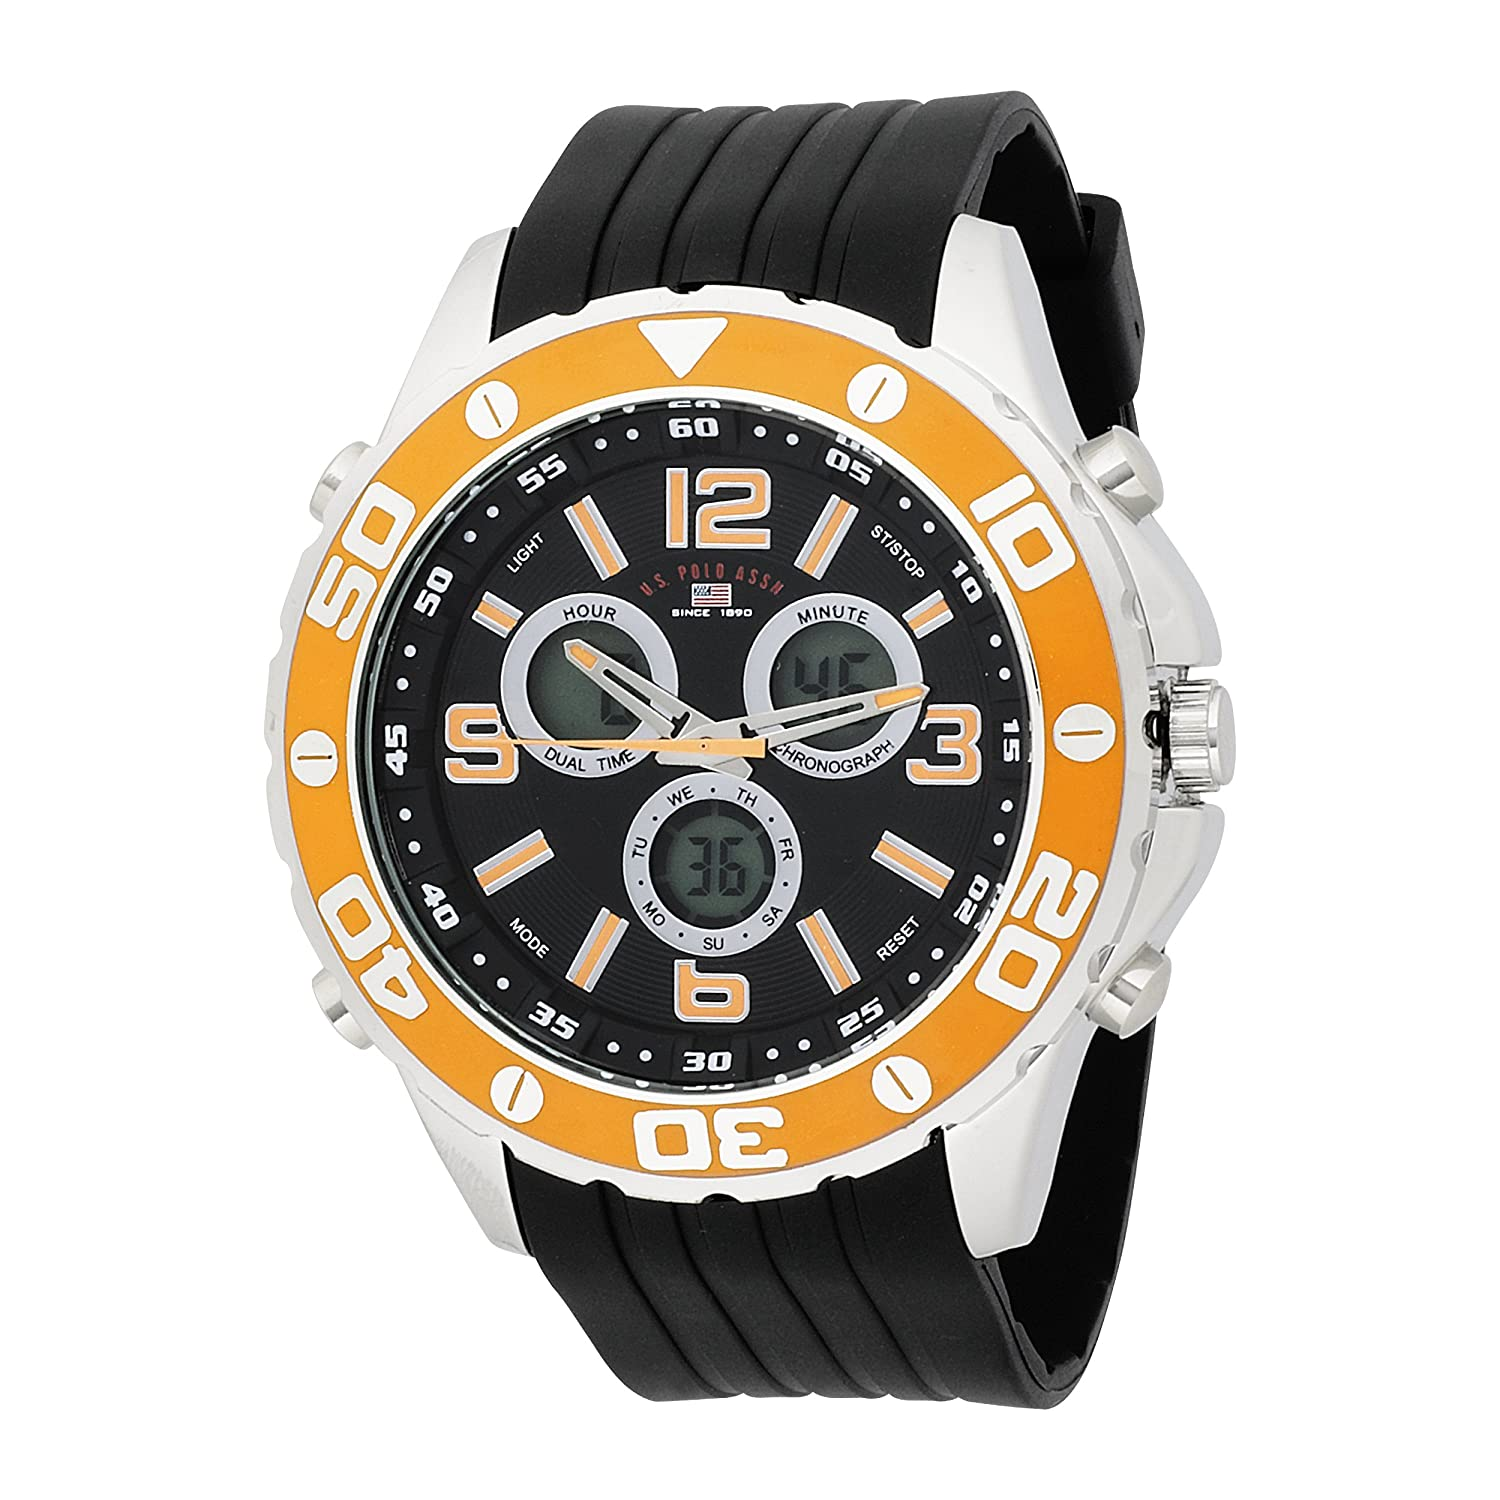 s watches u s polo assn s us9072 analog